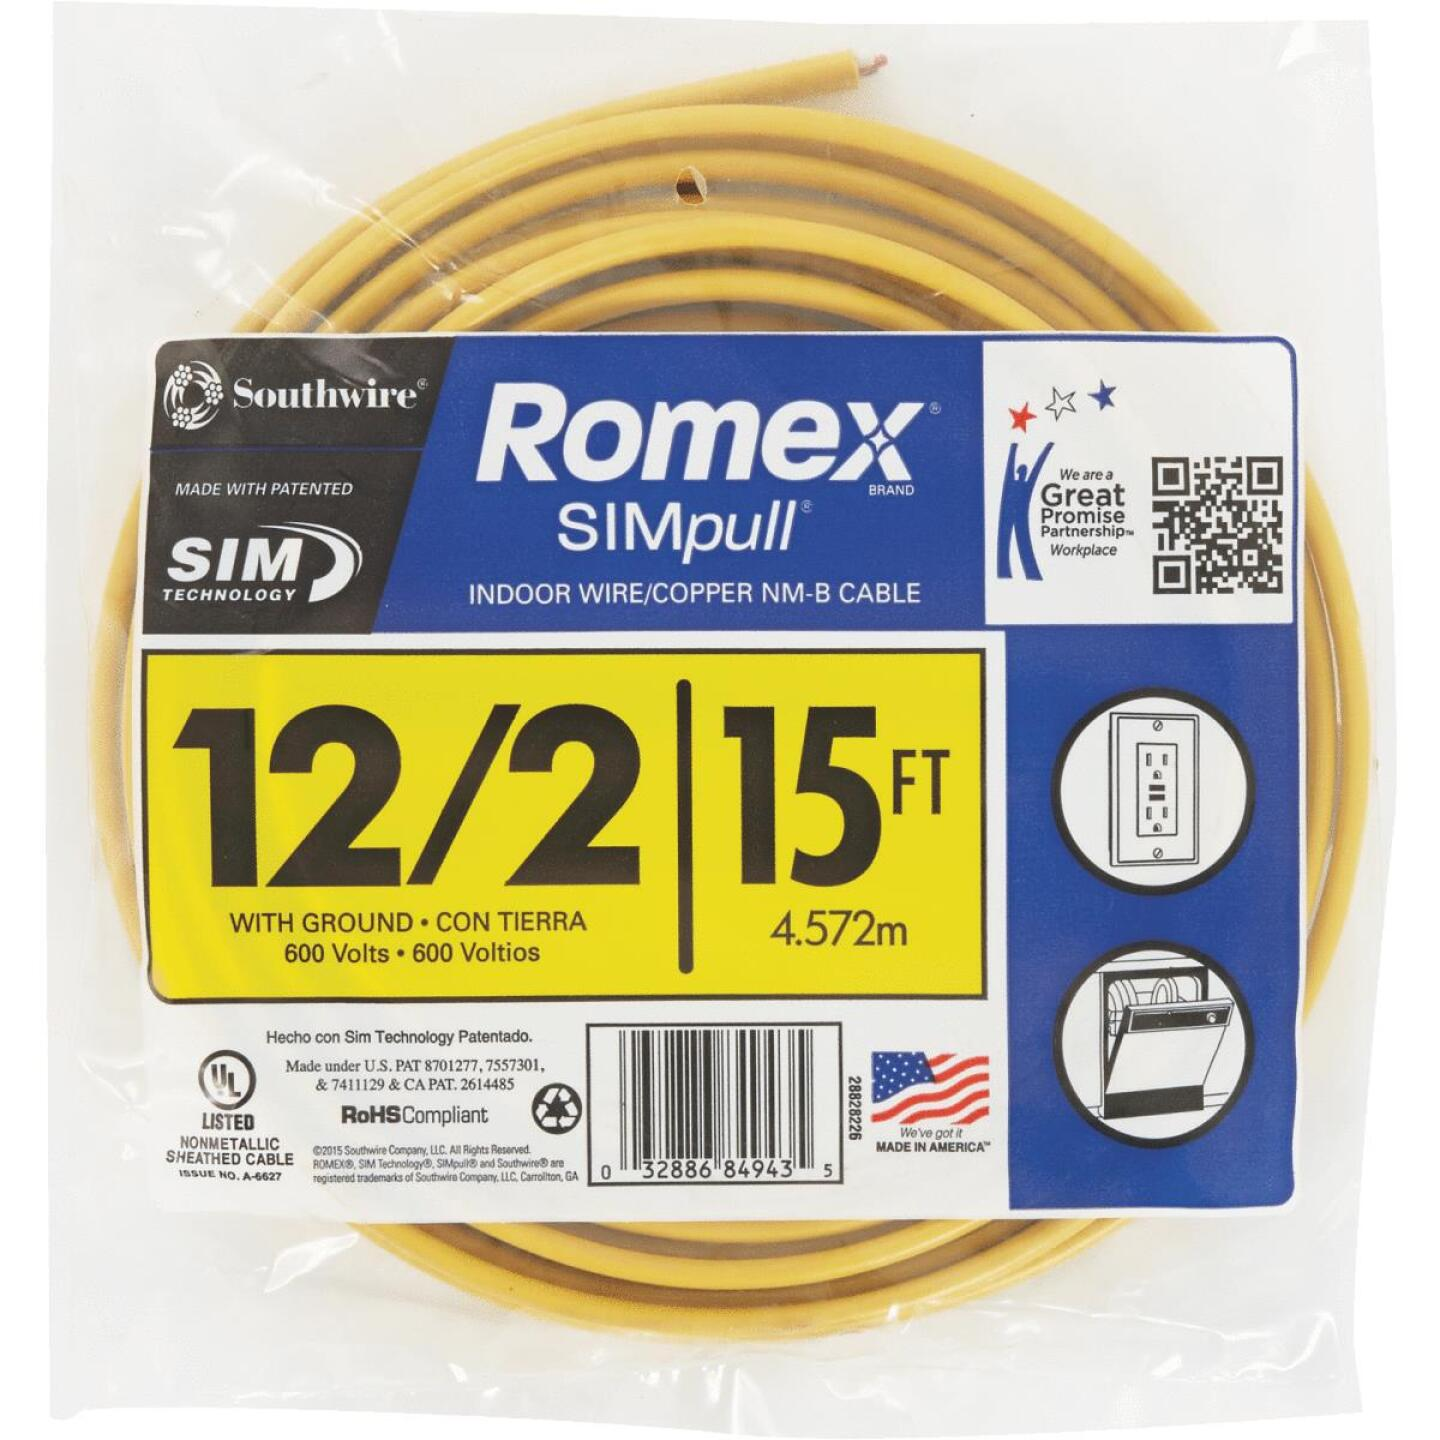 Romex 15 Ft. 12-2 Solid Yellow NMW/G Wire Image 2